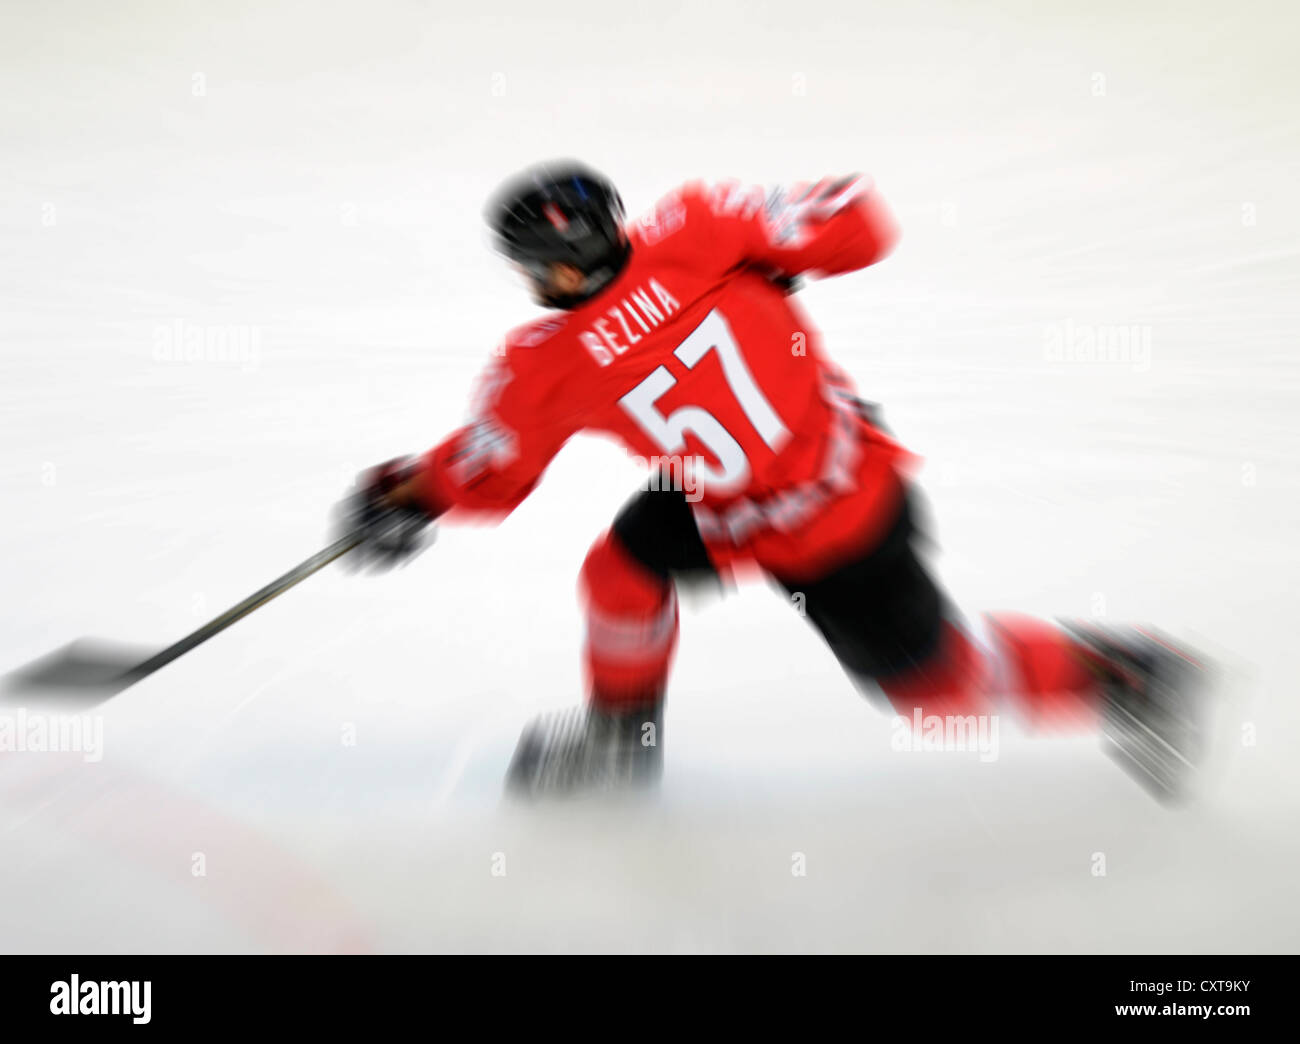 Ice hockey player in action - Stock Image